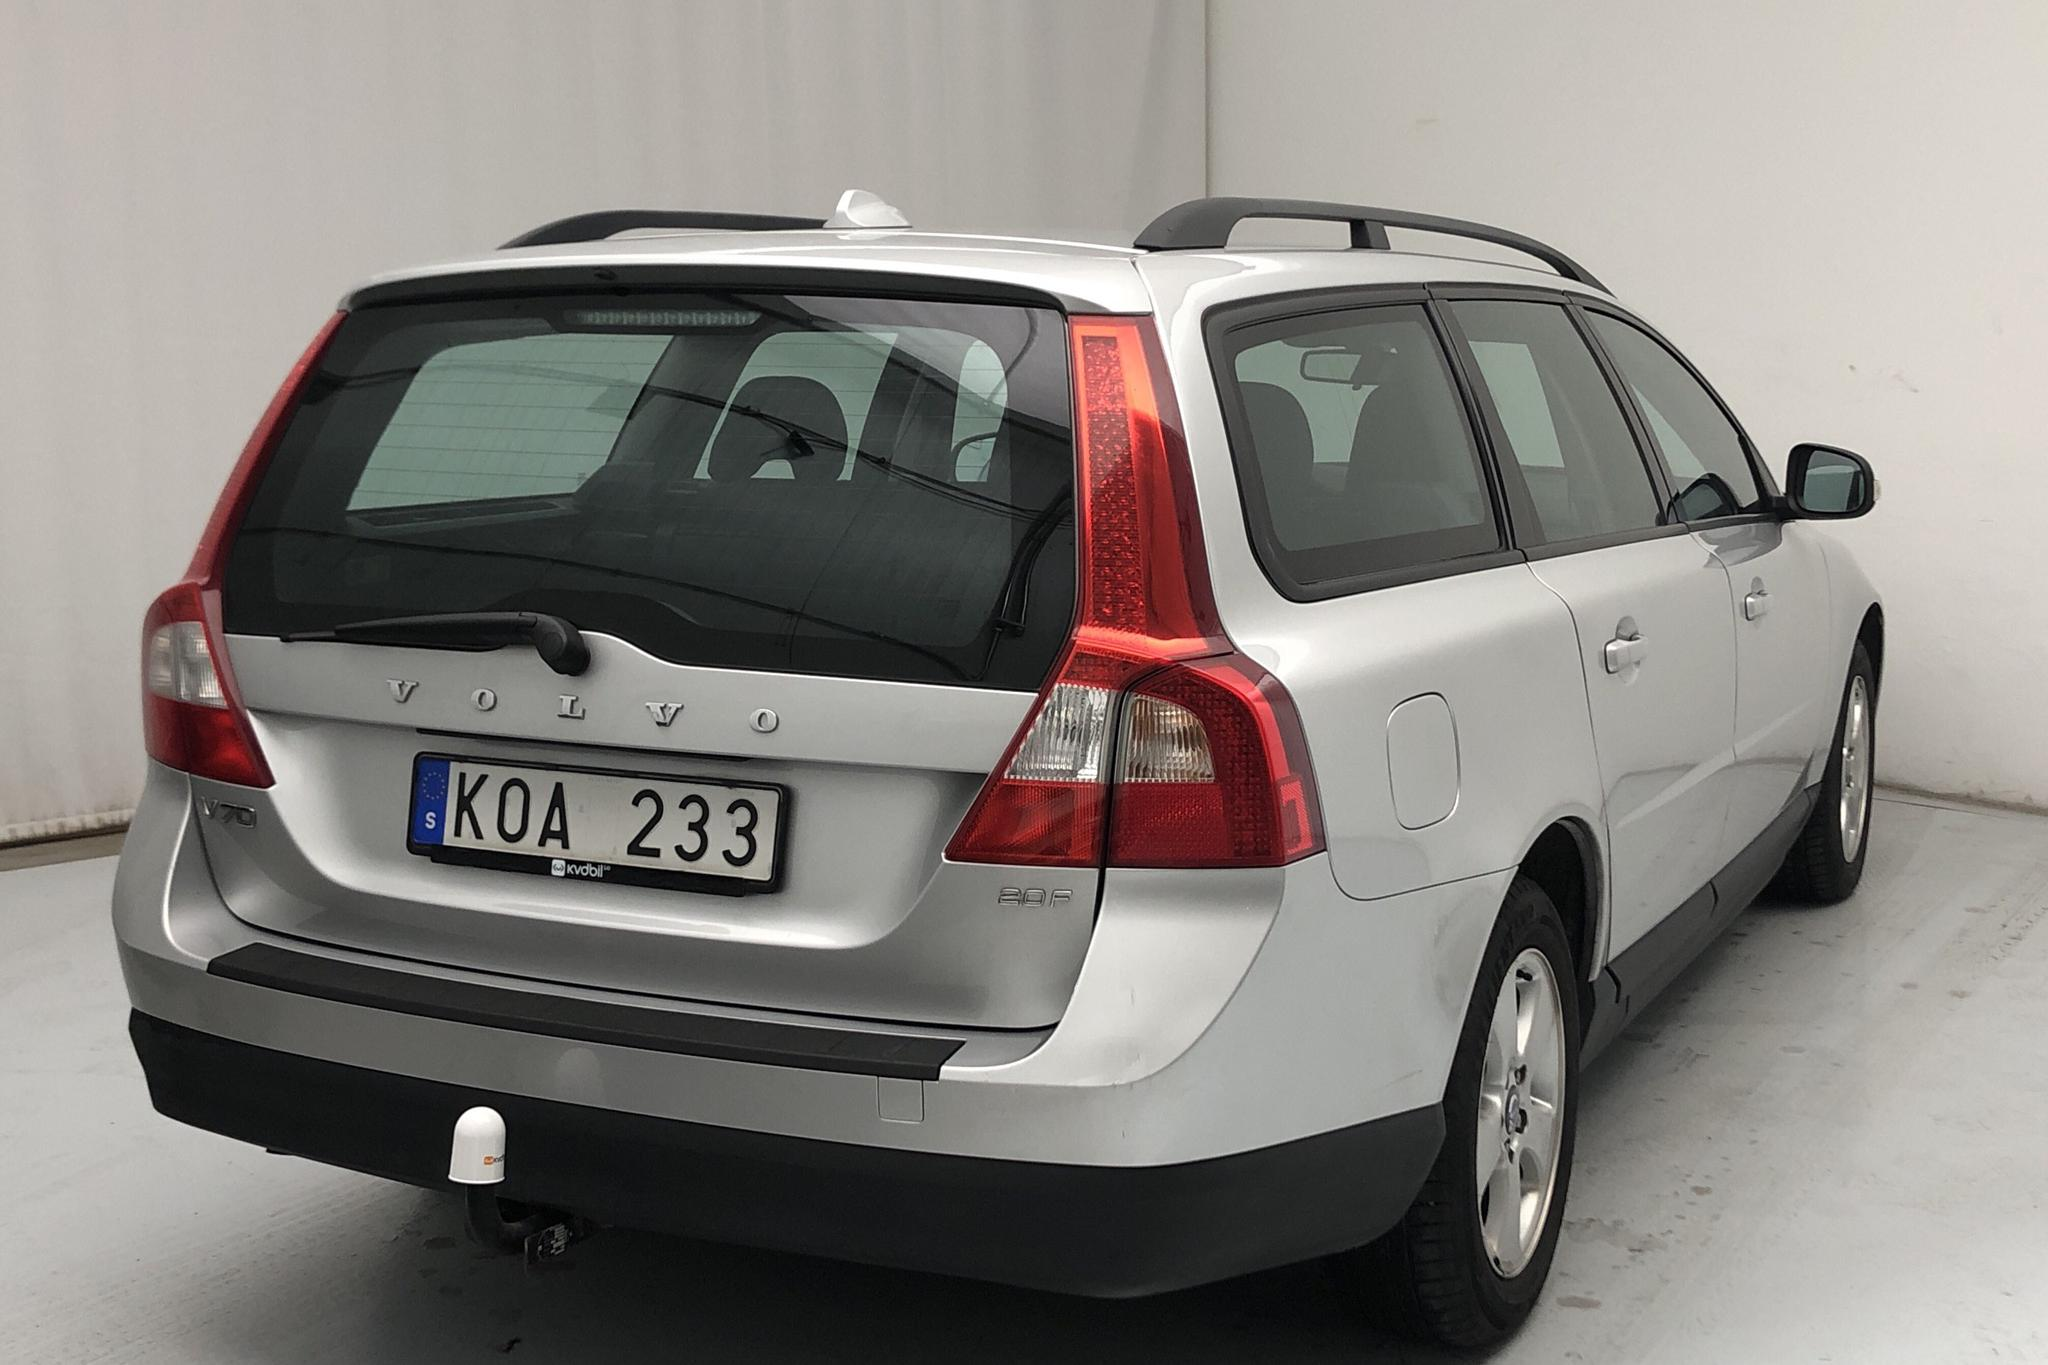 Volvo V70 II 2.0F (145hk) - 14 108 mil - Manuell - Light Grey - 2010